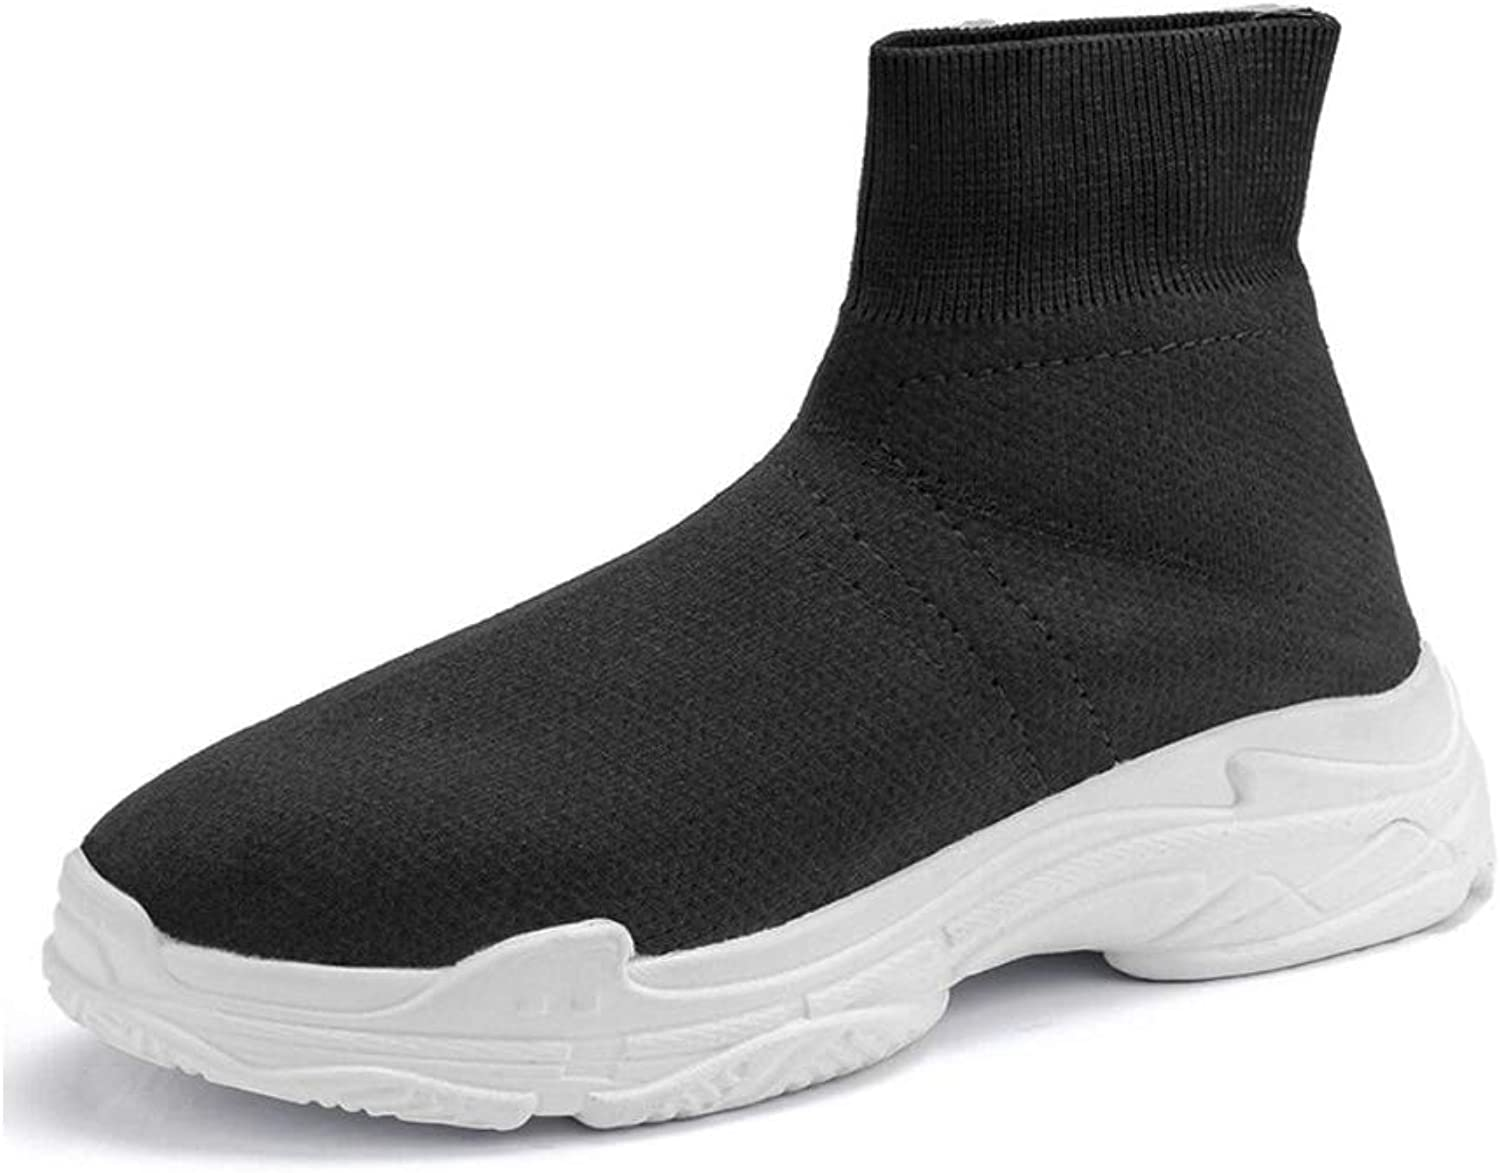 Men's Running Lightweight Breathable Casual Sports shoes Fashion Sneakers Walking shoes Cotton shoes Warm Fly Woven Stretch Socks shoes